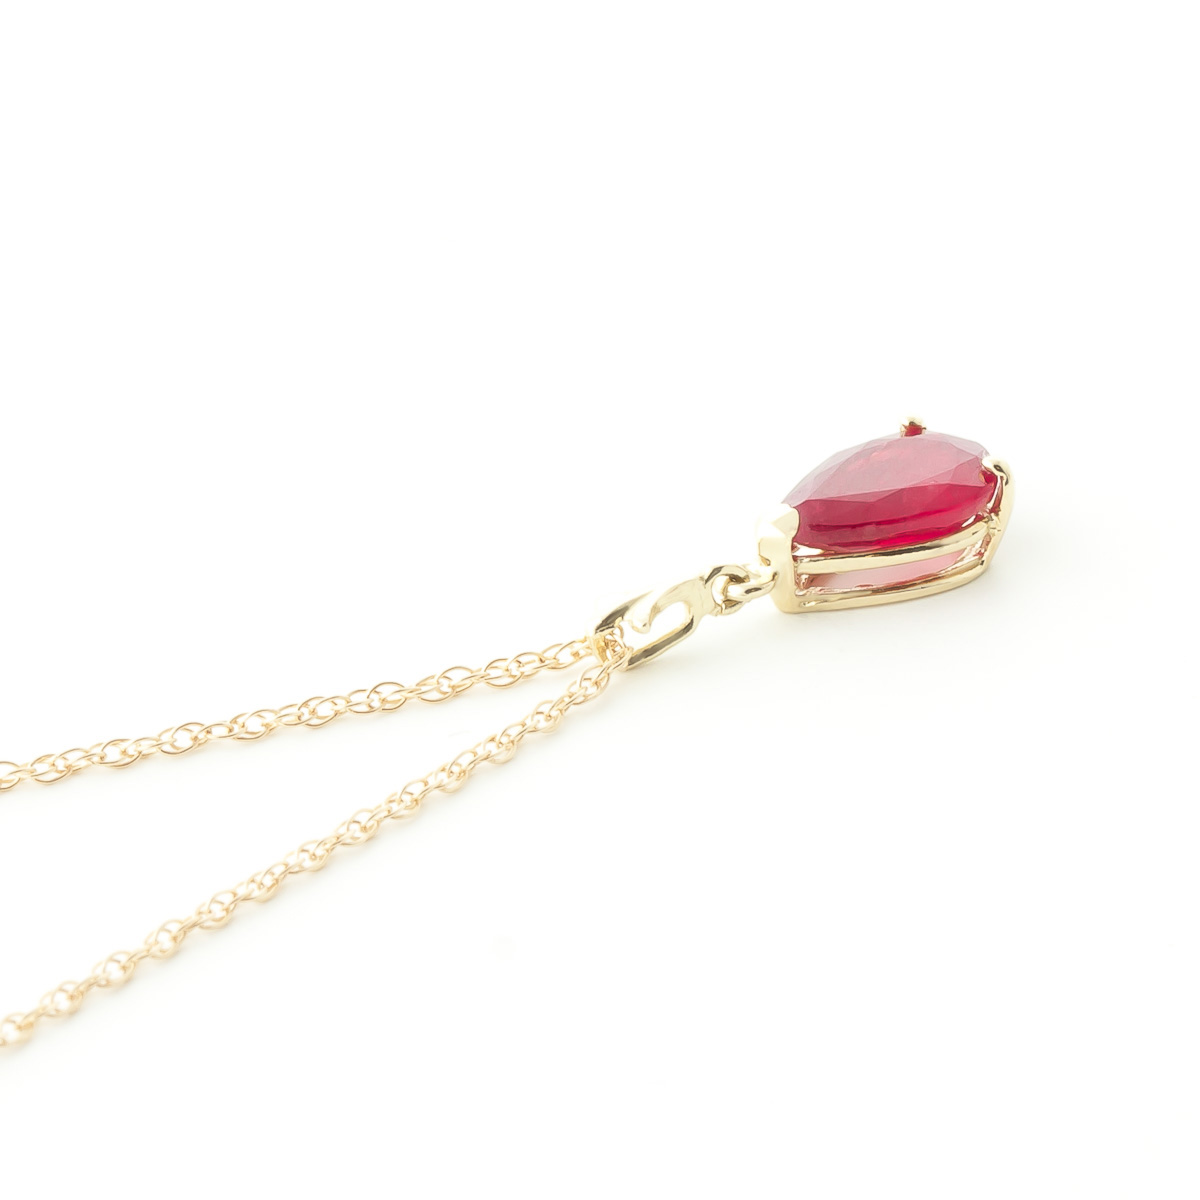 Ruby Belle Pendant Necklace 1.75ct in 9ct Gold